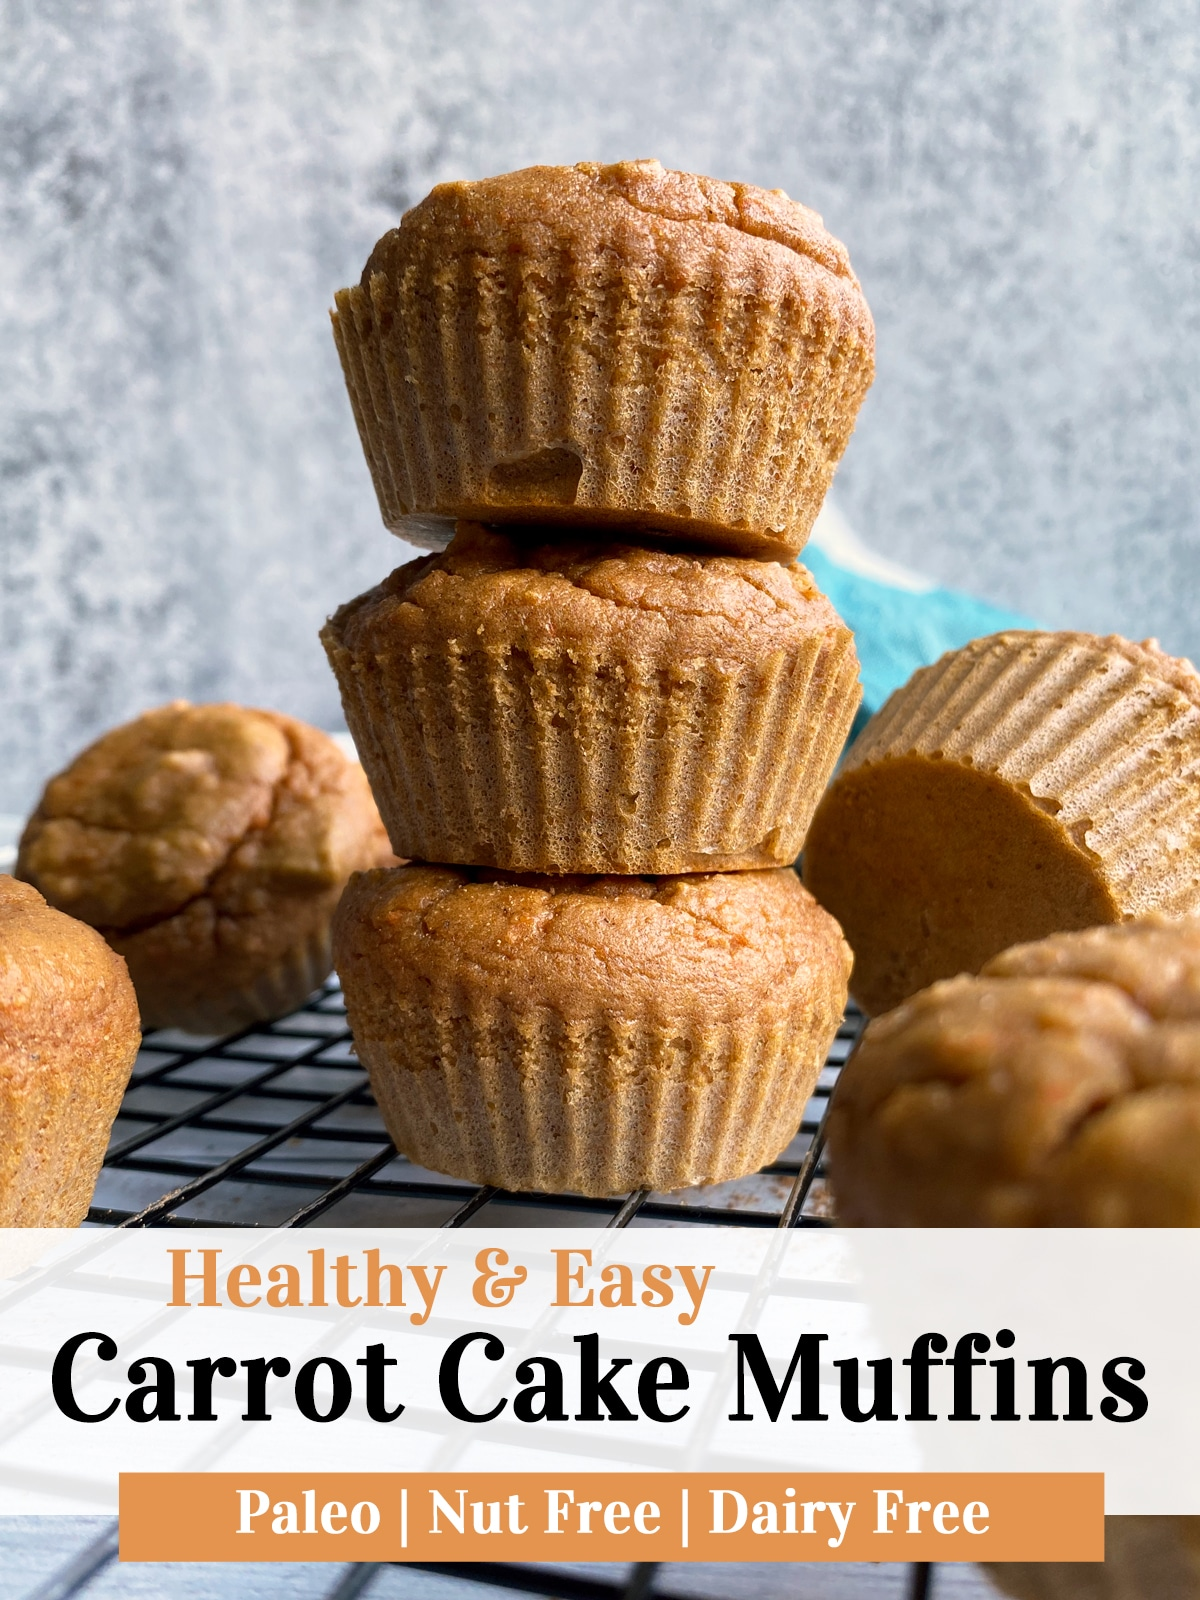 Grain-Free-paleo-Carrot-Cake-Muffin-Recipe